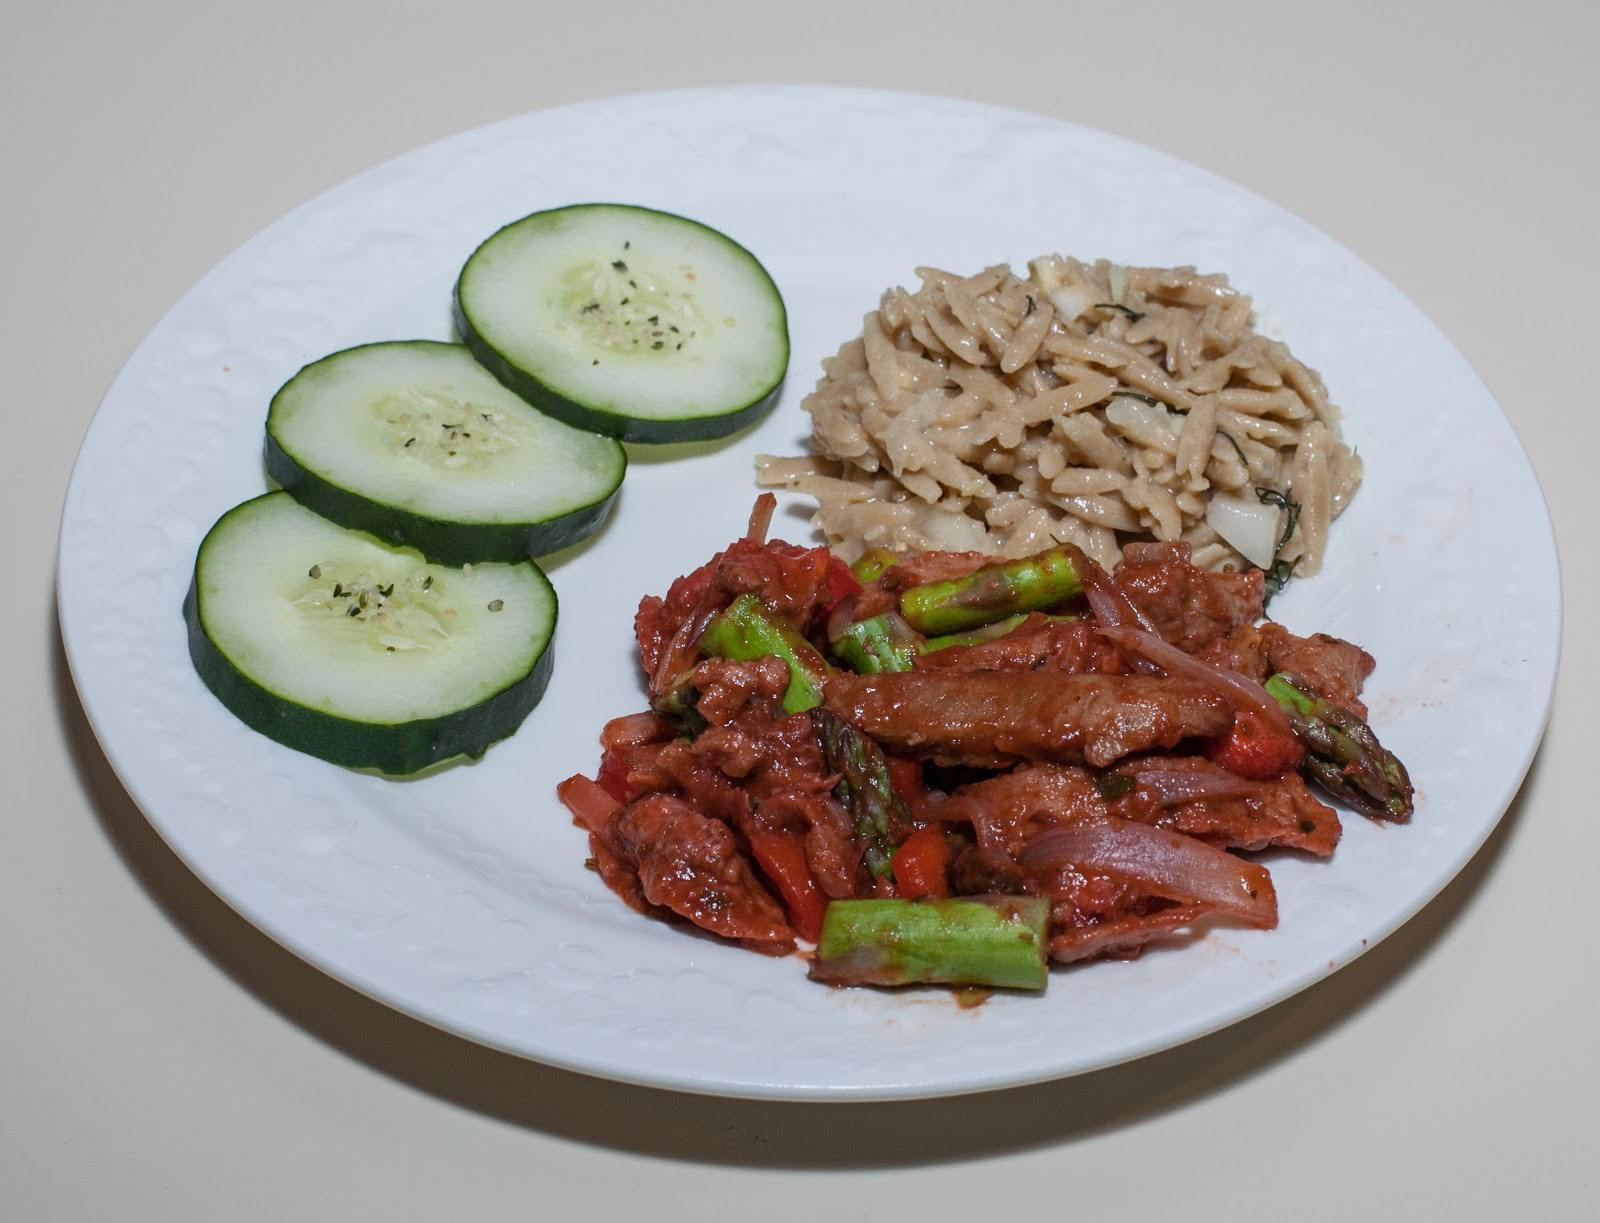 ... Asparagus and Seitan, Whole Wheat Orzo with Fennel and Ginger-Miso